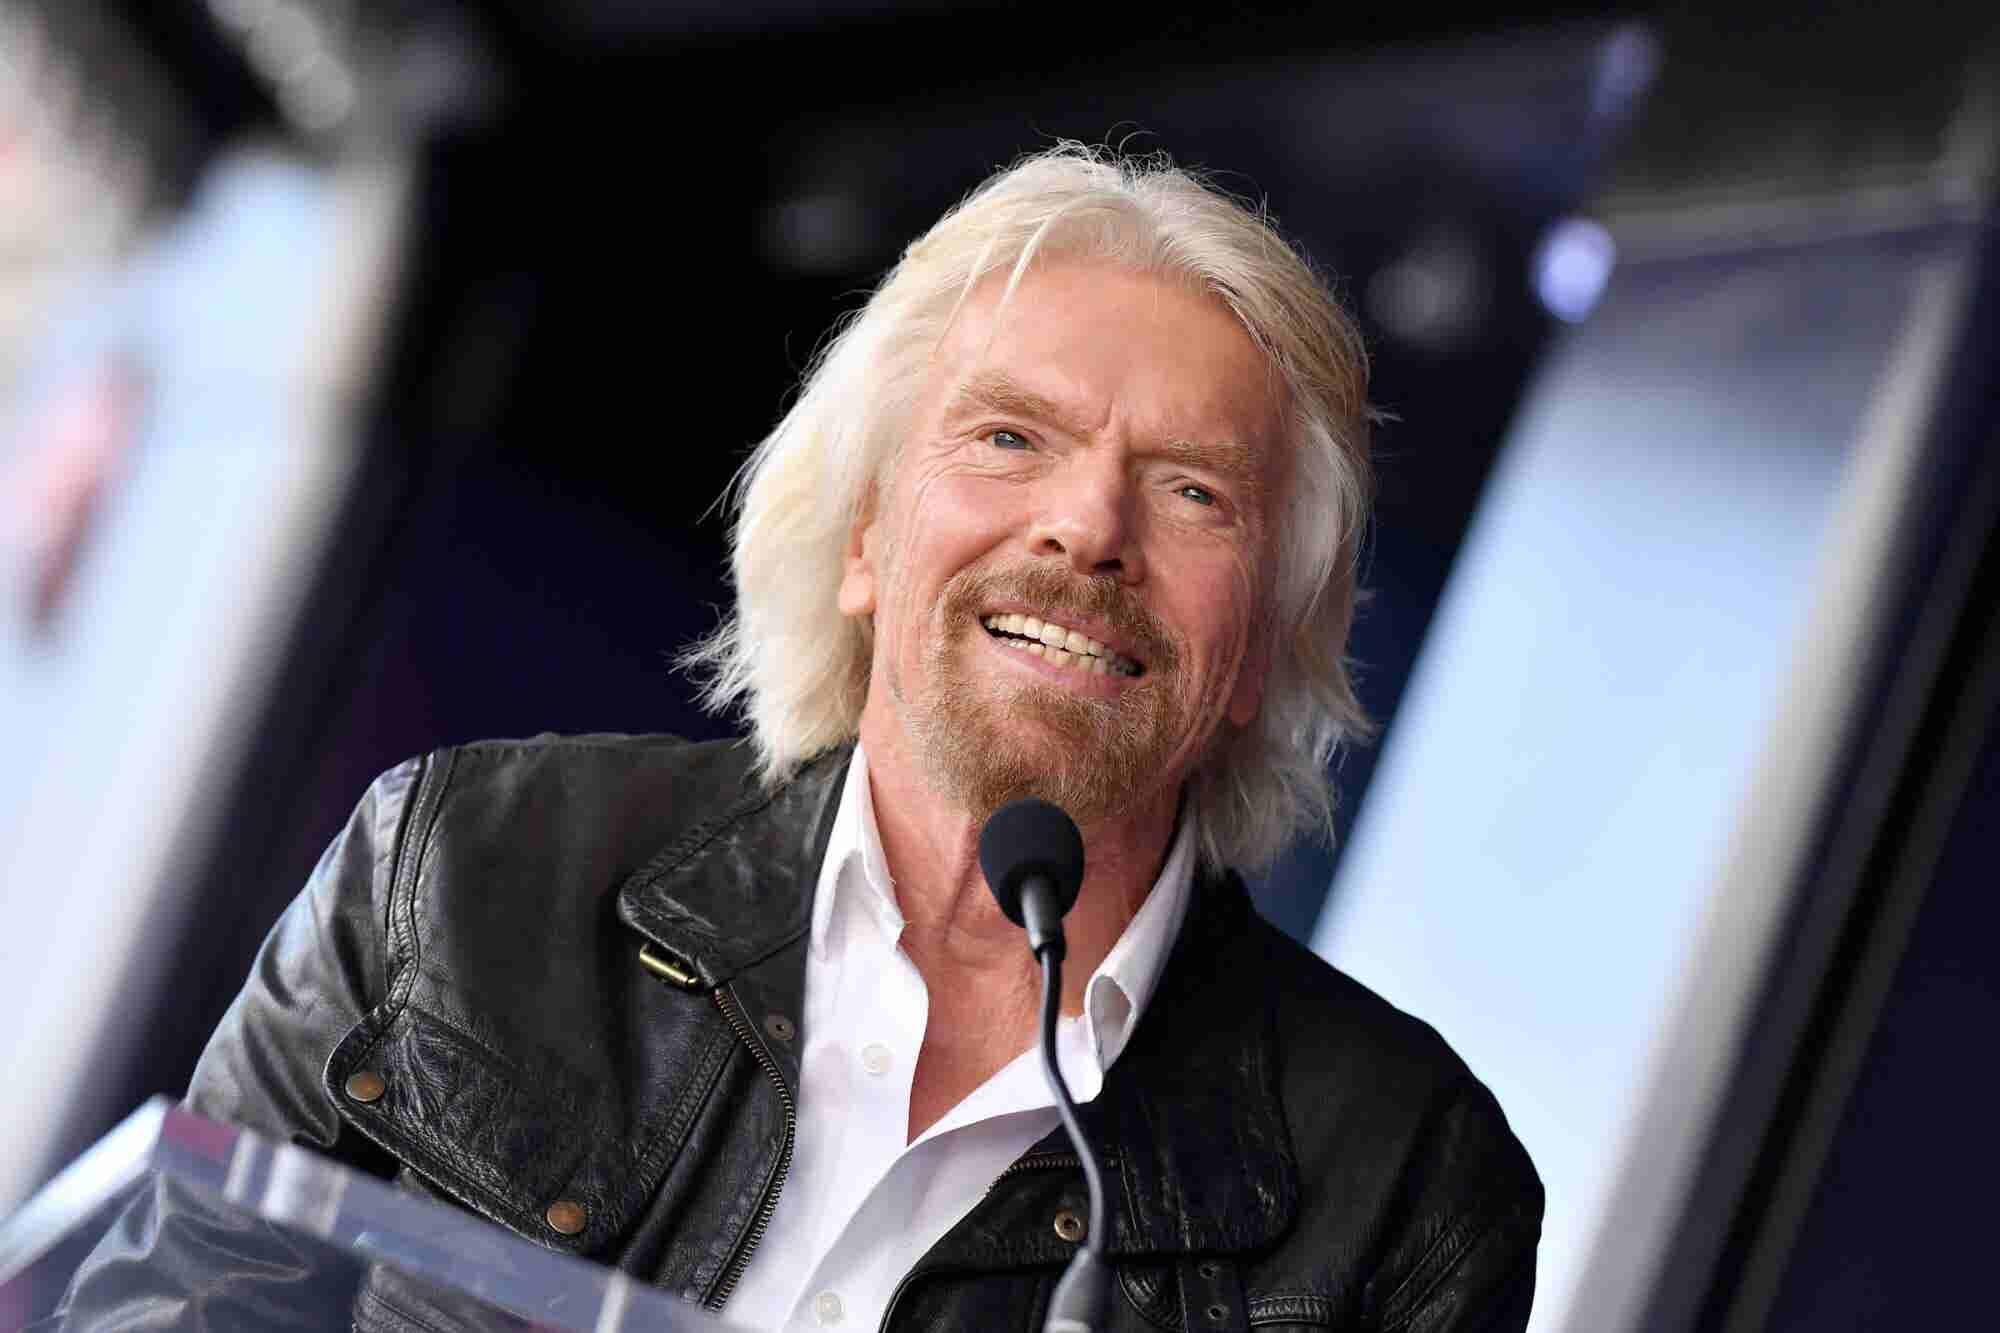 10 Worthwhile Books Written by Self-Made Billionaires